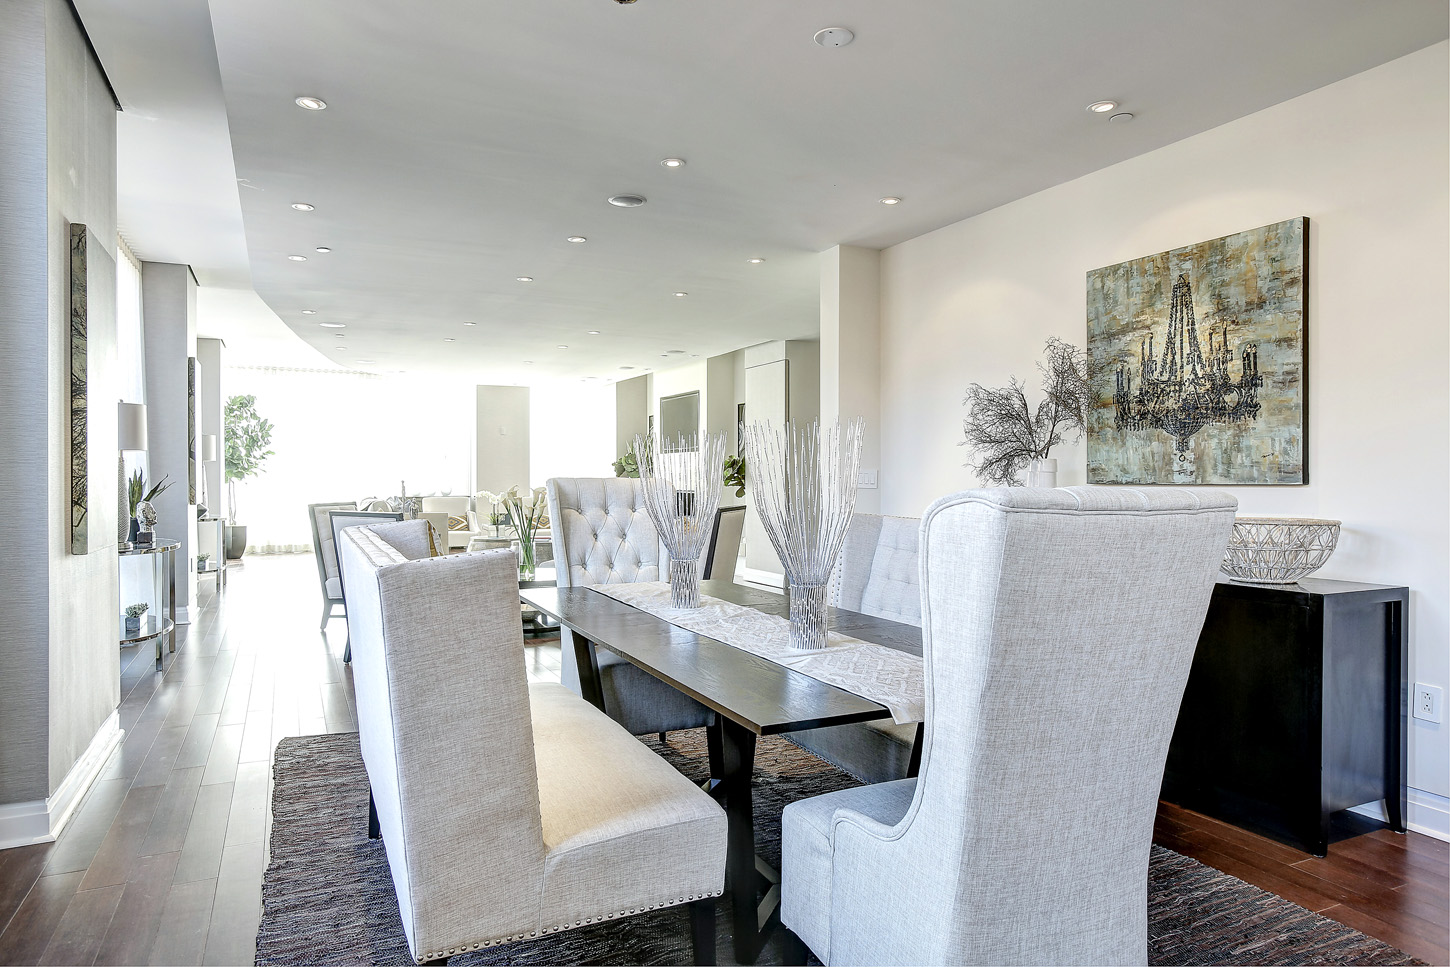 Small Space Dining Room Decorating Ideas On A Budget | ABODO